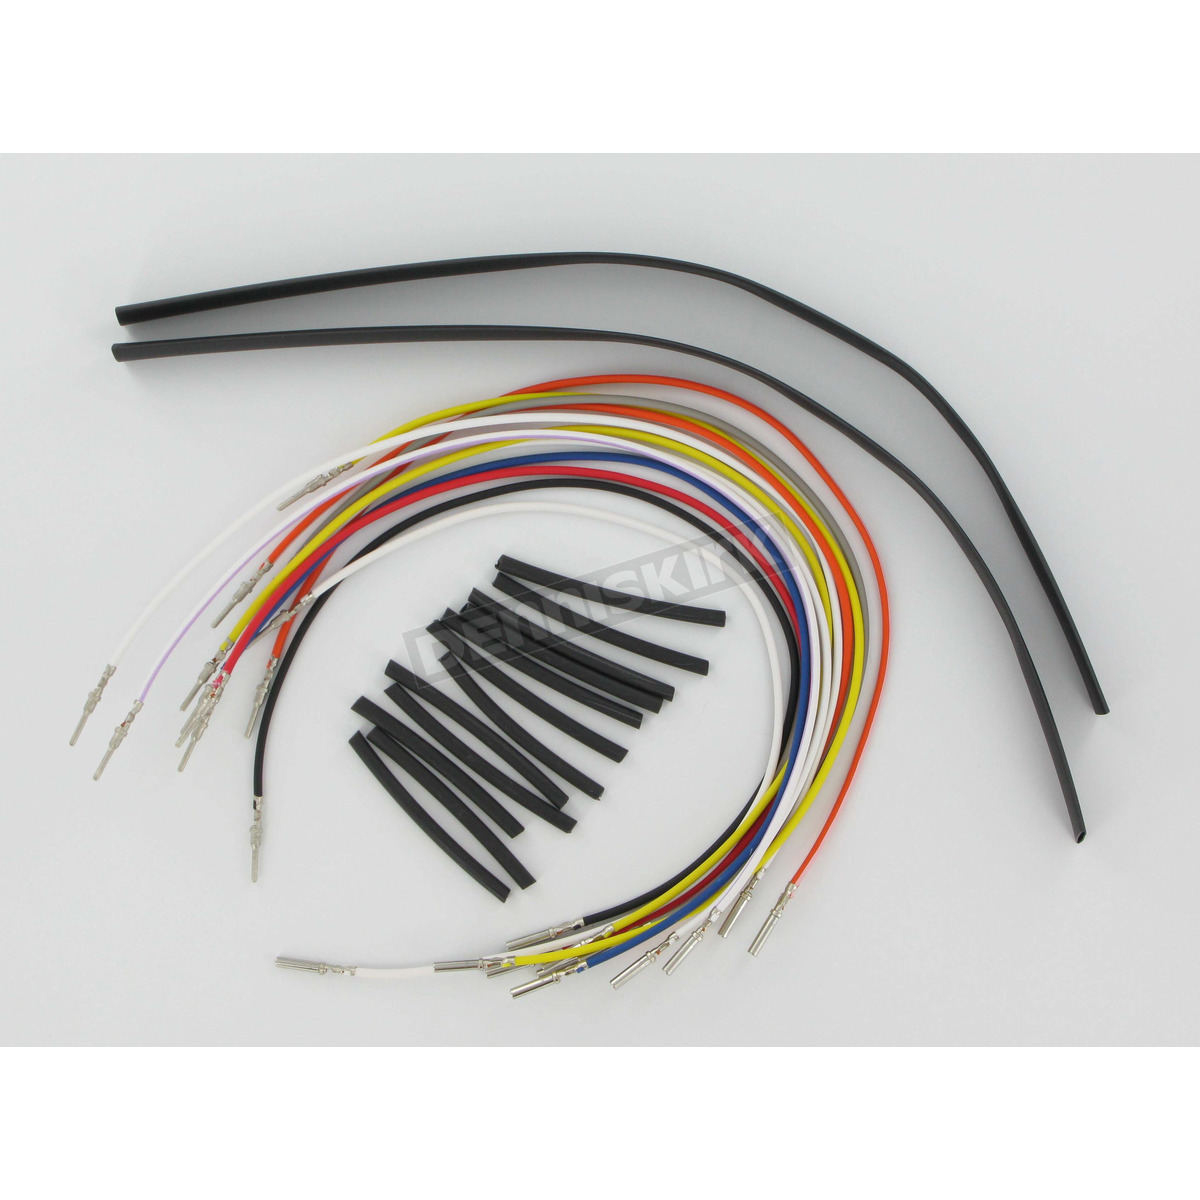 dk211741 novello 4 in handlebar wire harness extension kit nil wh4 harley davidson wiring harness extension at aneh.co